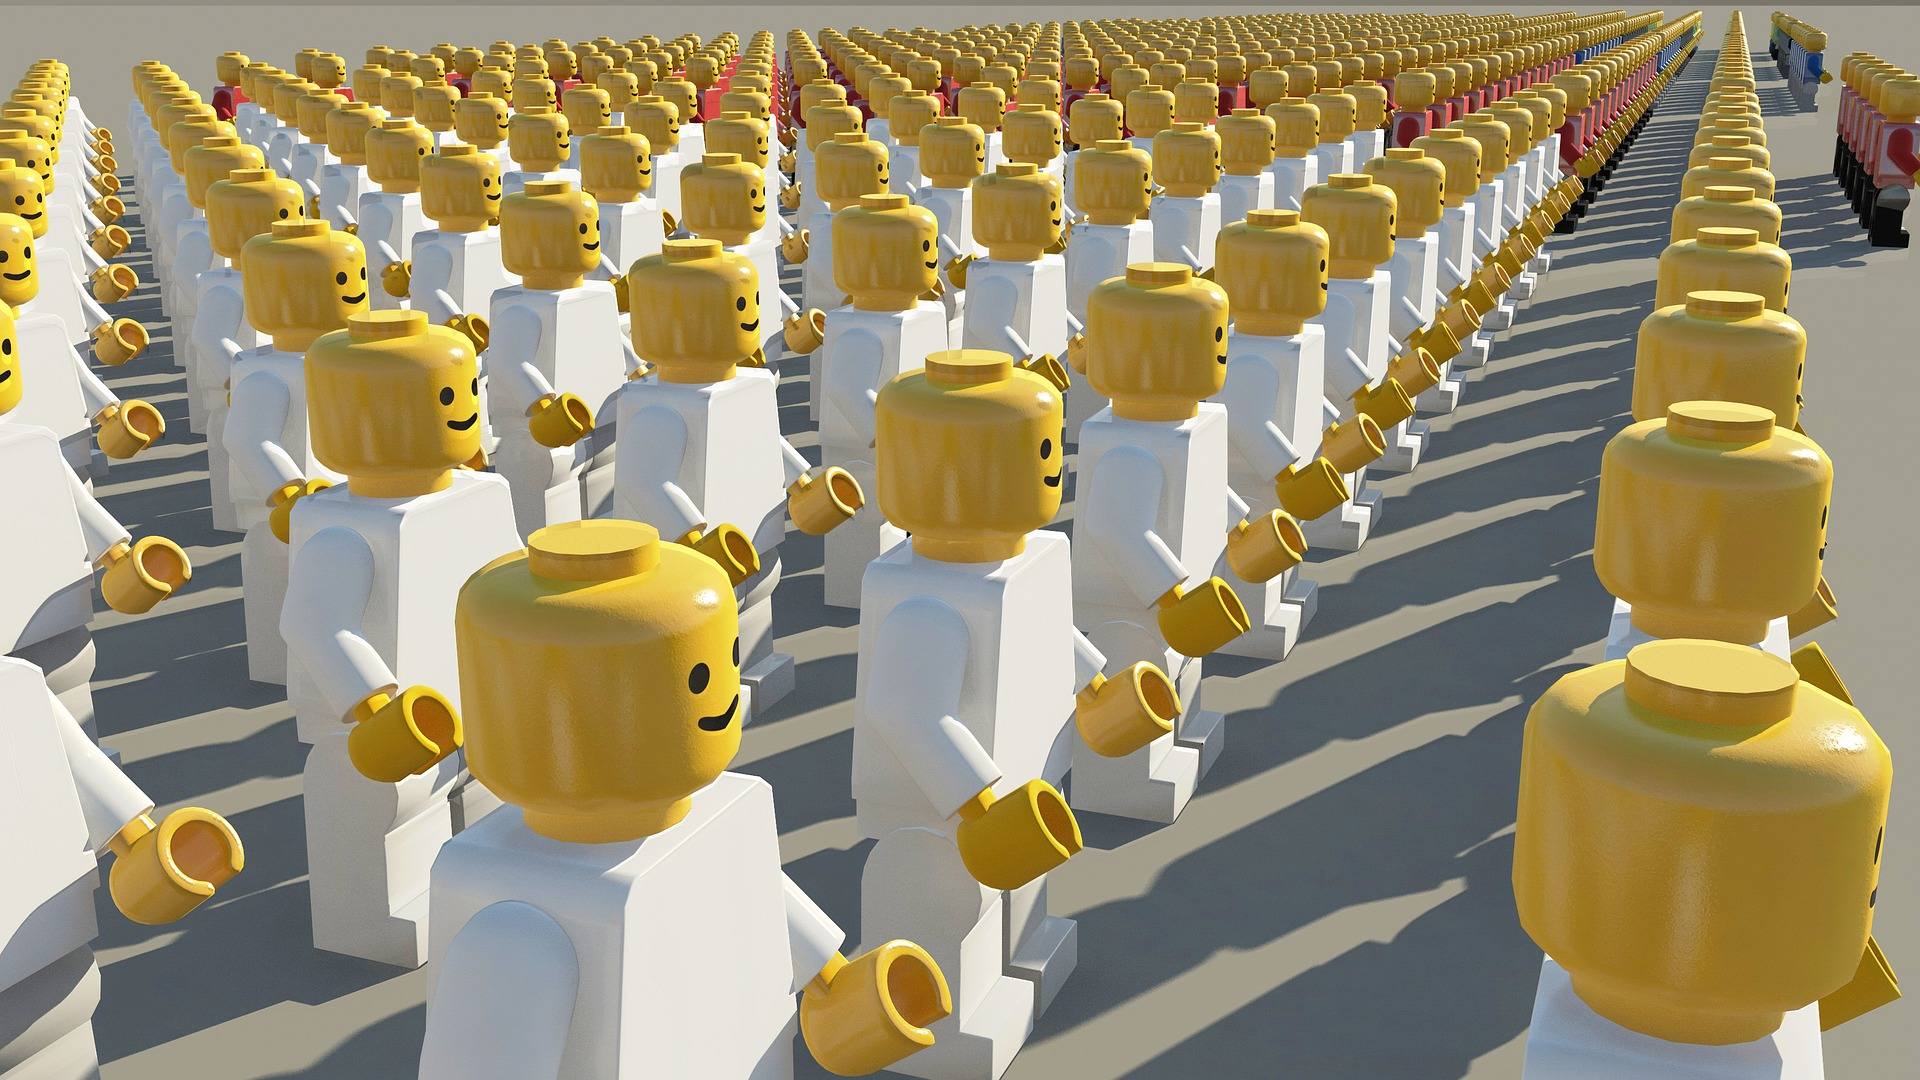 Uniform LEGO minifigures standing in a formation